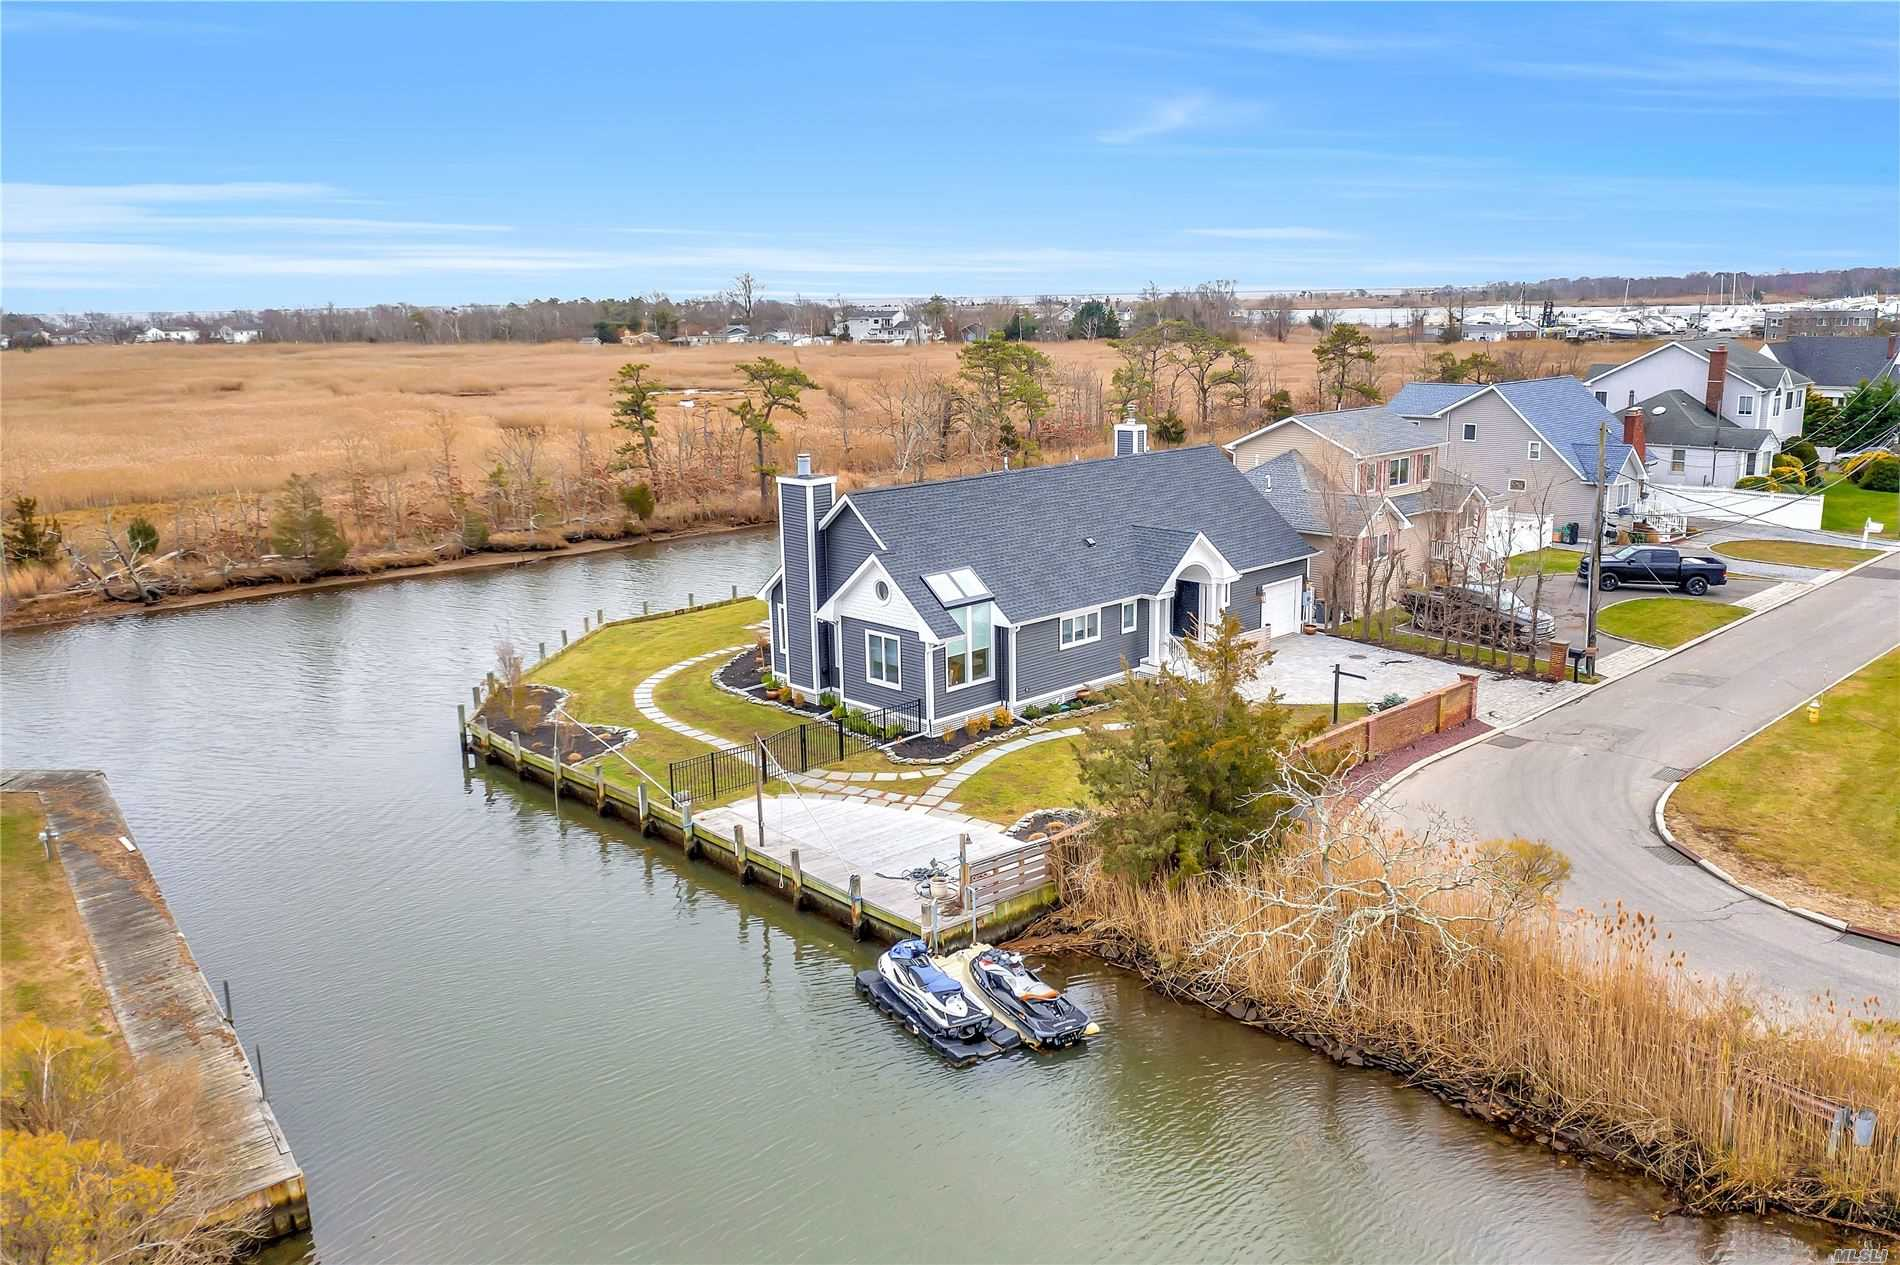 Don't Miss This Spectacular Waterfront Property Tucked Away in the Idle Hour Area with Over 200' of Bulkhead! This Home has Totally Been Updated with Wide Open Floor Plan Great for Entertaining. Water Views from Nearly Every Window, Gleaming Wood Floors, Cathedral Ceilings, Radiant Heat, Living Room w/ Beautiful Stone Fireplace, Kitchen w/ Stainless Steel Appliances and Granite Countertops, Master Bedroom w/ Full Bath and Outside Balcony and Outside Seating w/ Private Views on Canal.